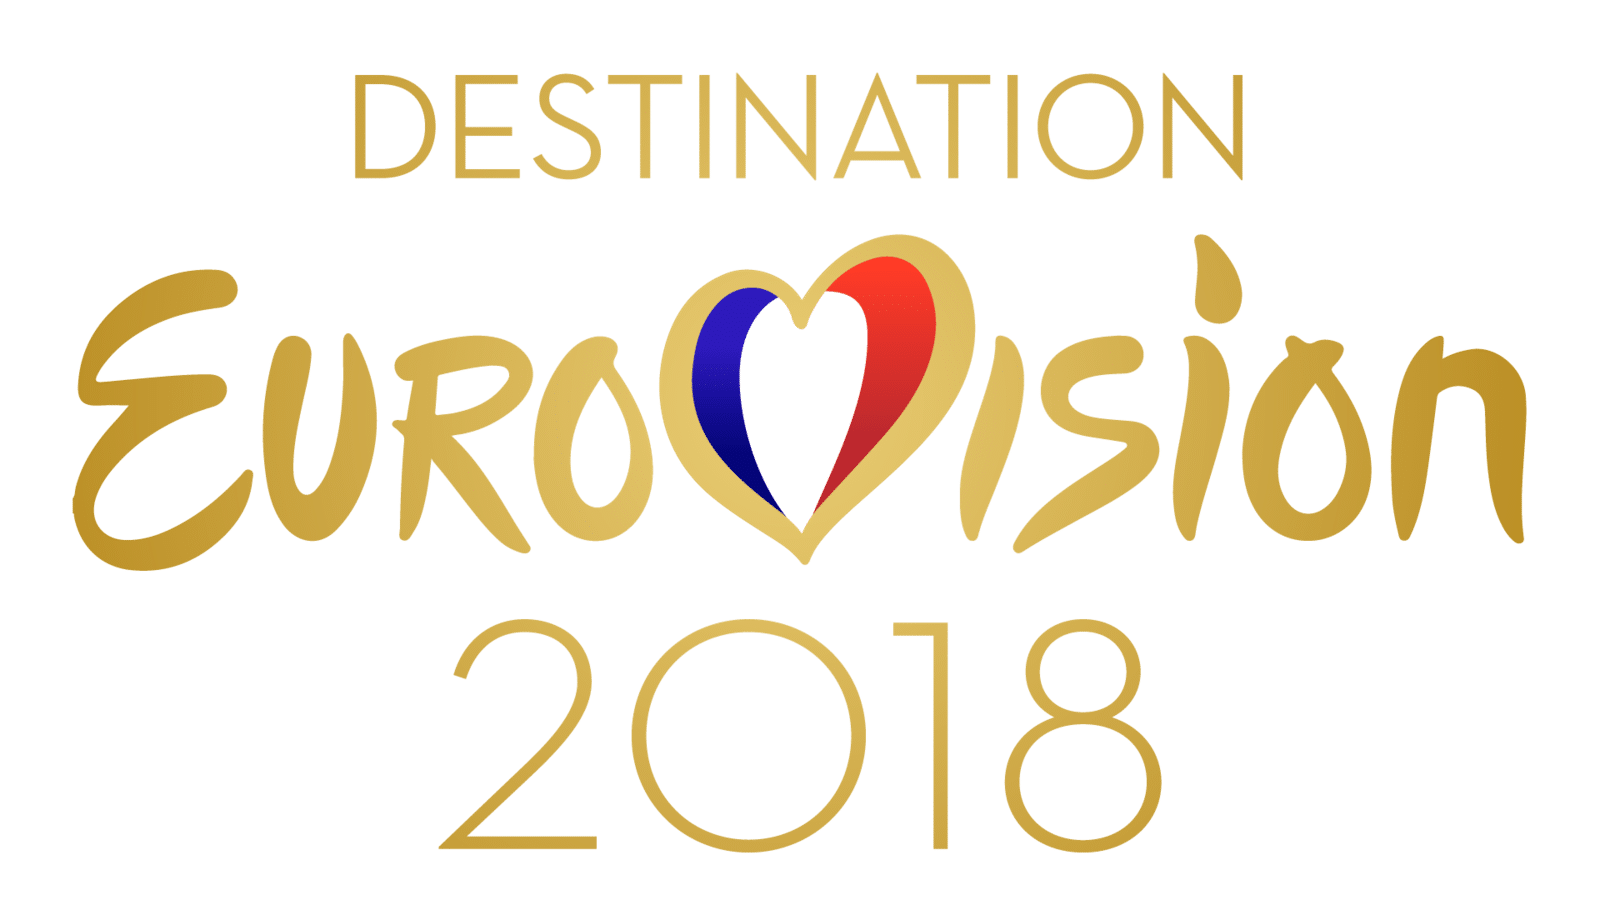 voix off destination eurovision